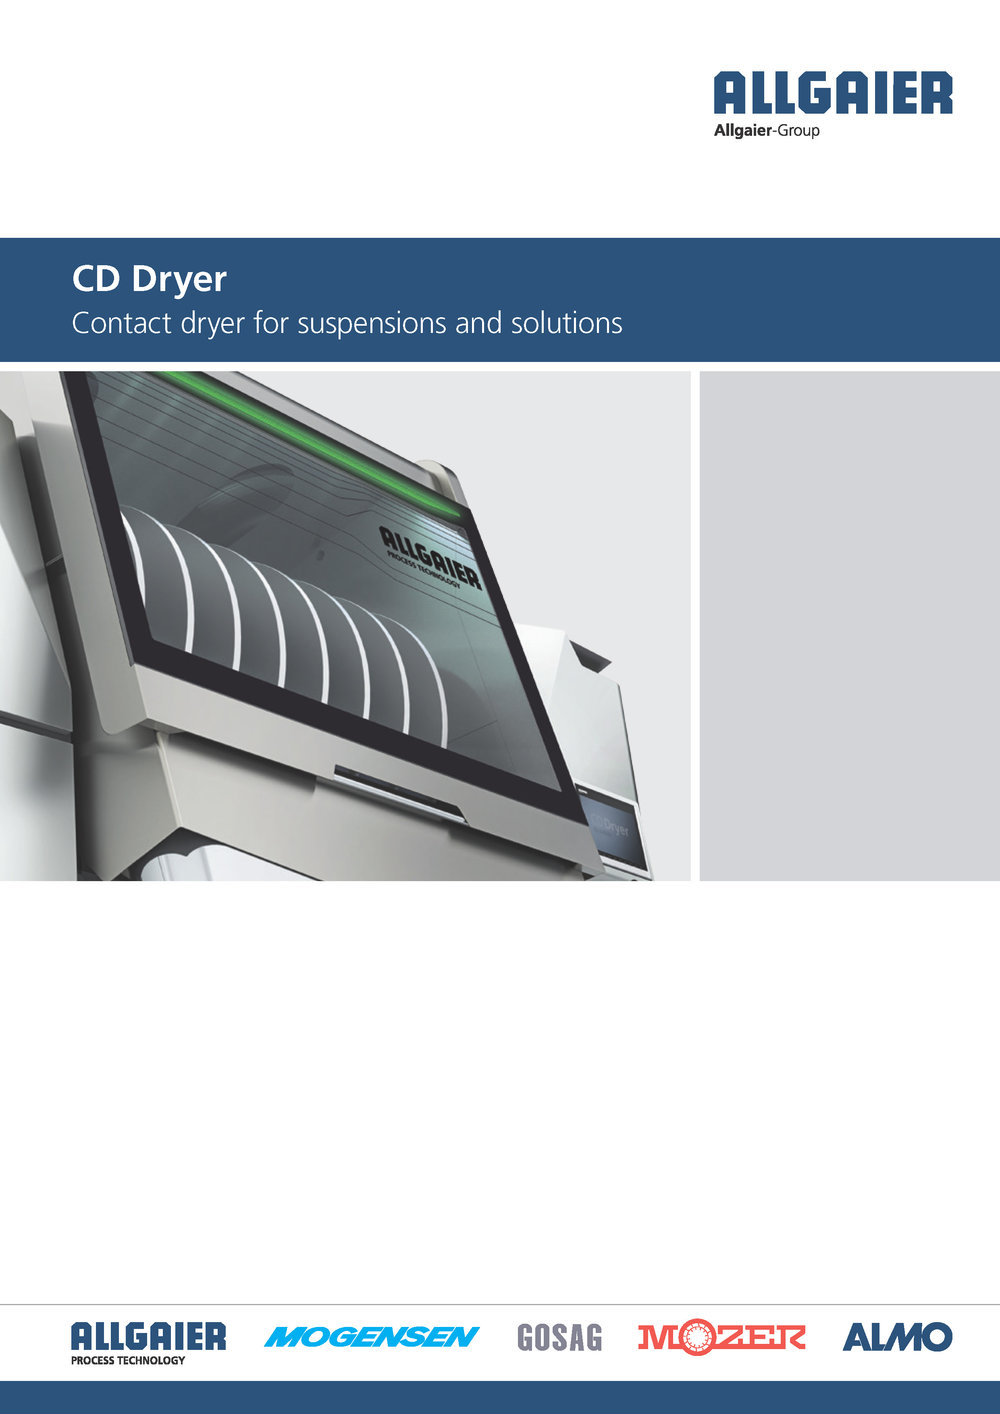 CD Dryer Drying/concentration of suspensions and solutions